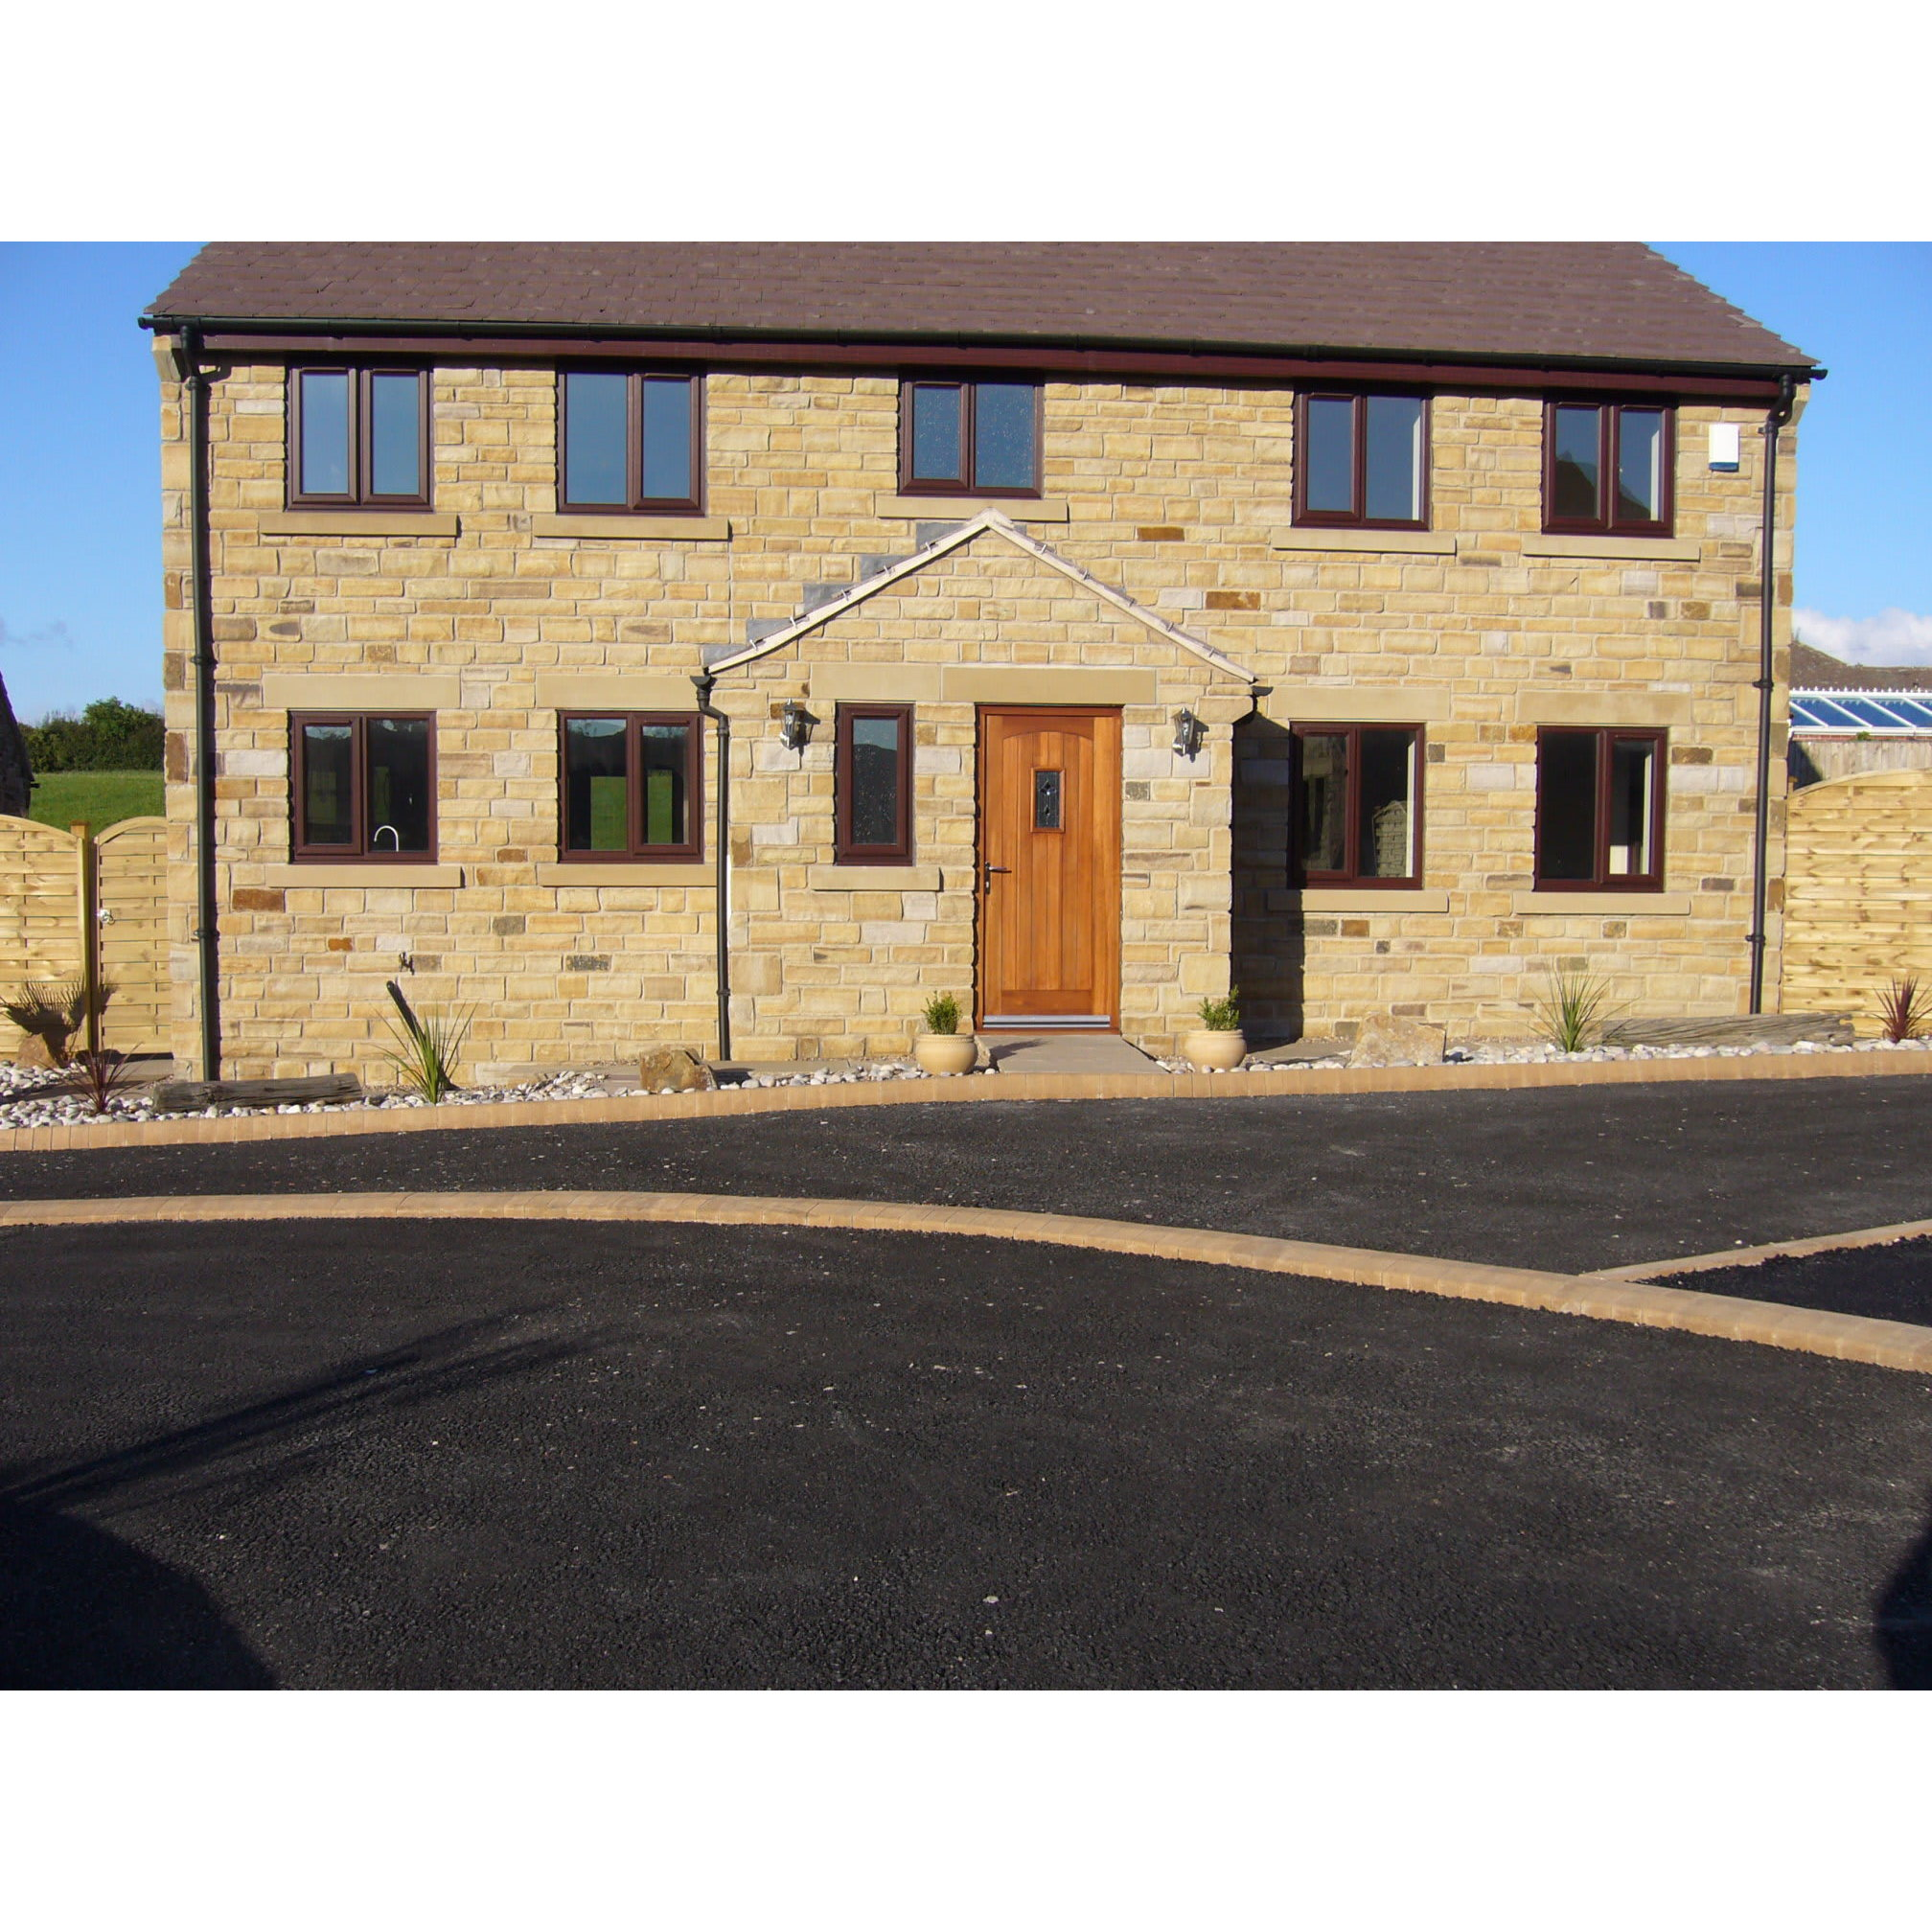 Wath Natural Stone Ltd - Rotherham, South Yorkshire S63 6DT - 01709 872873 | ShowMeLocal.com